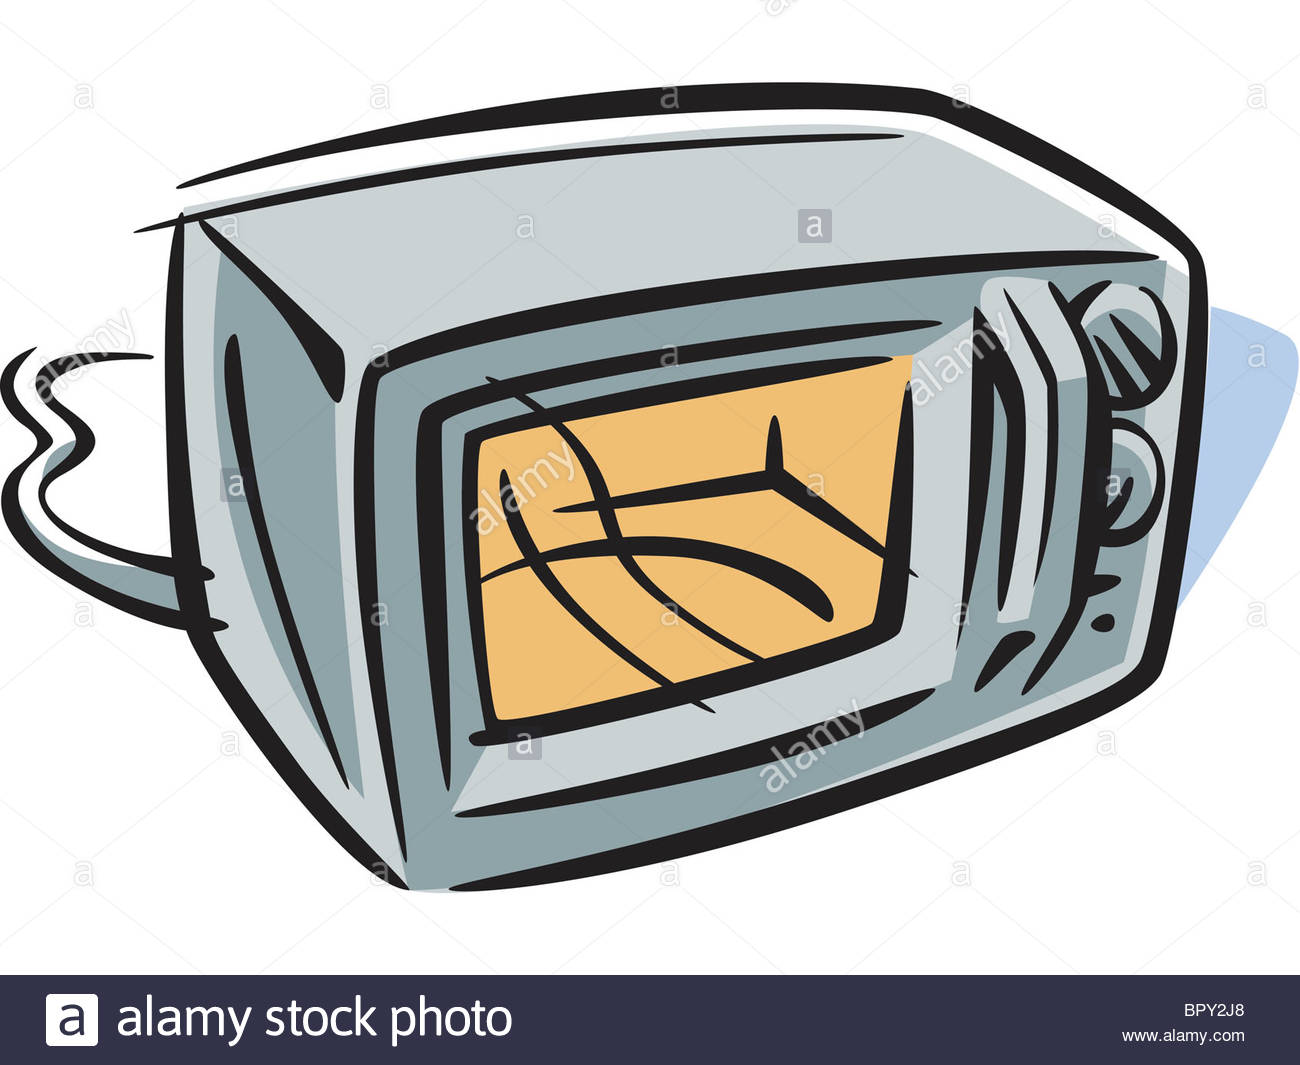 1300x1065 Drawing Of A Microwave Oven Stock Photo 31327584